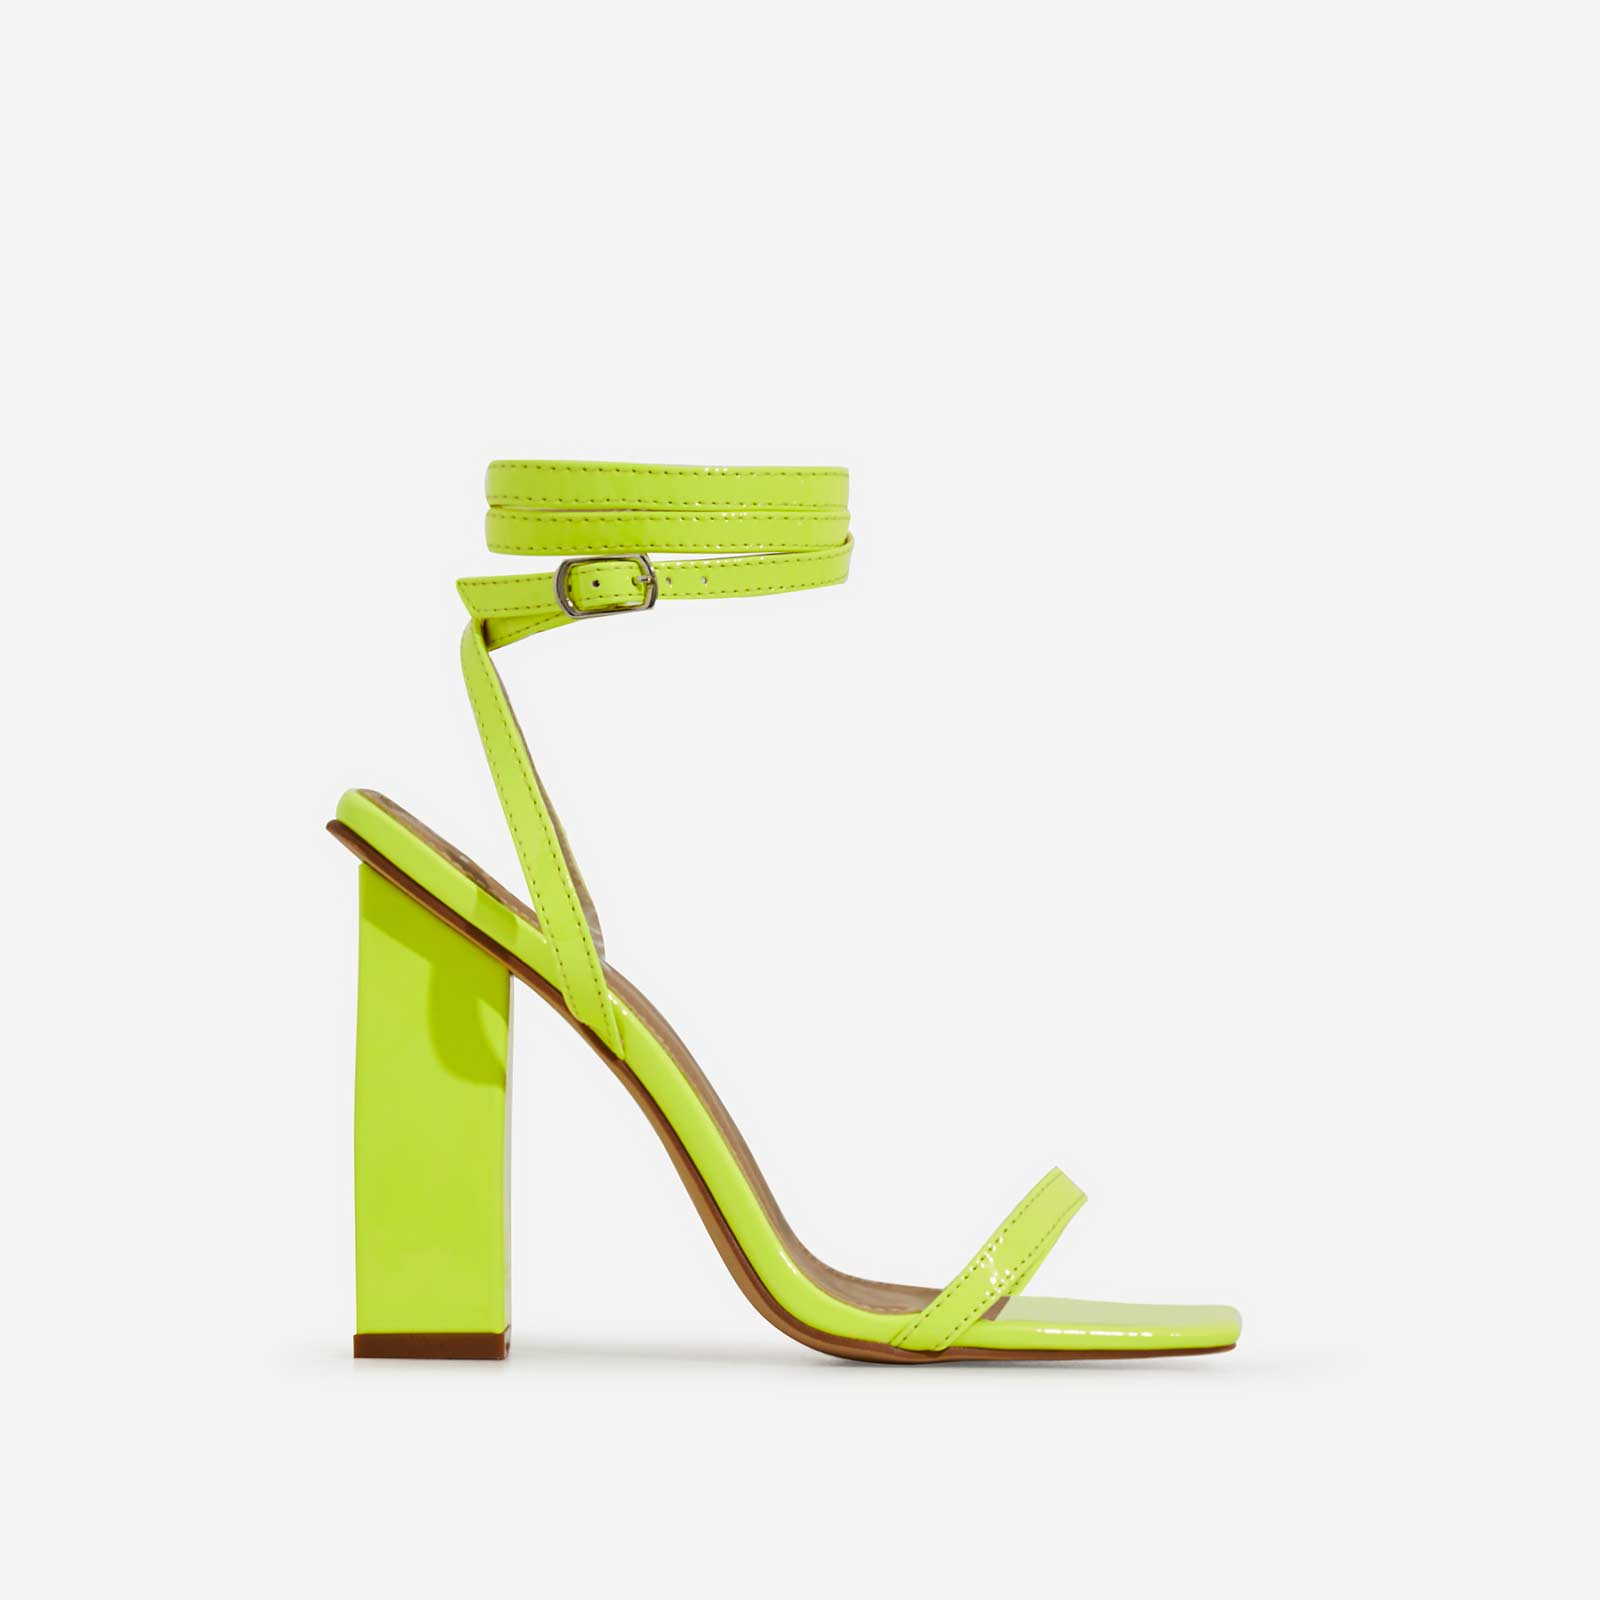 Lauve Lace Up Square Toe Block Heel In Lime Green Patent